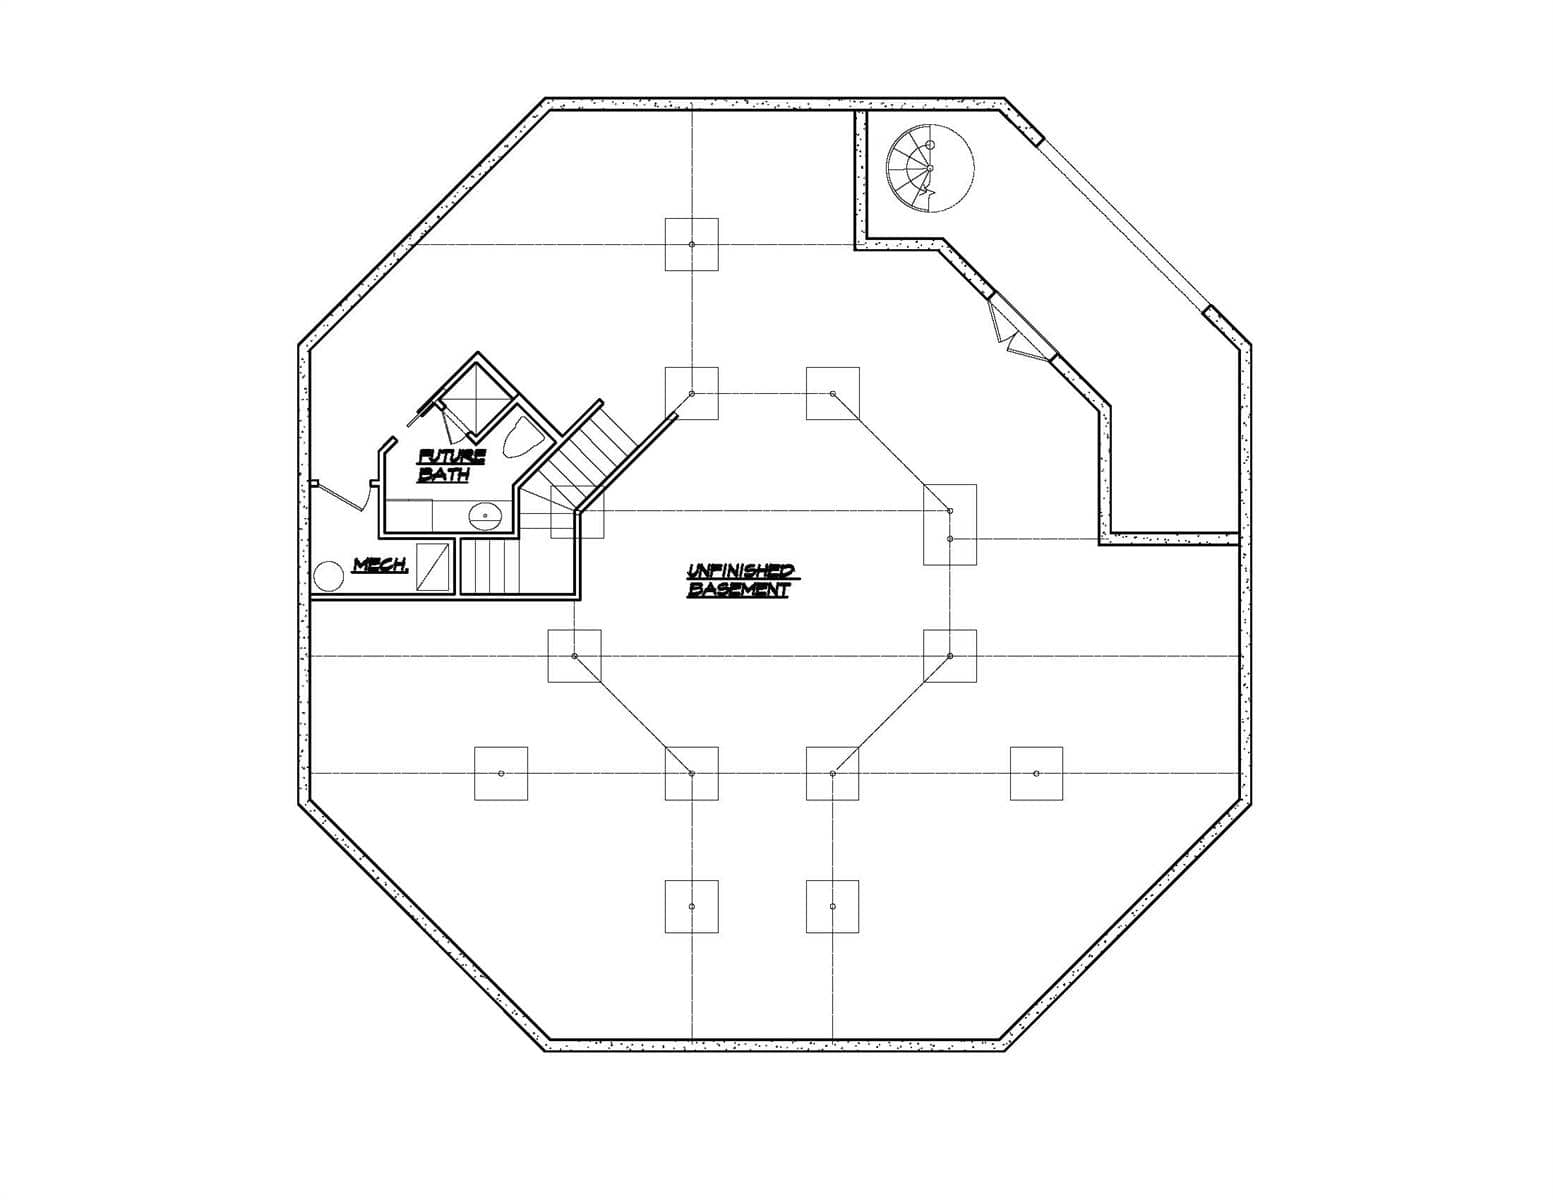 Lower level floor plan with future bath and mechanical room.